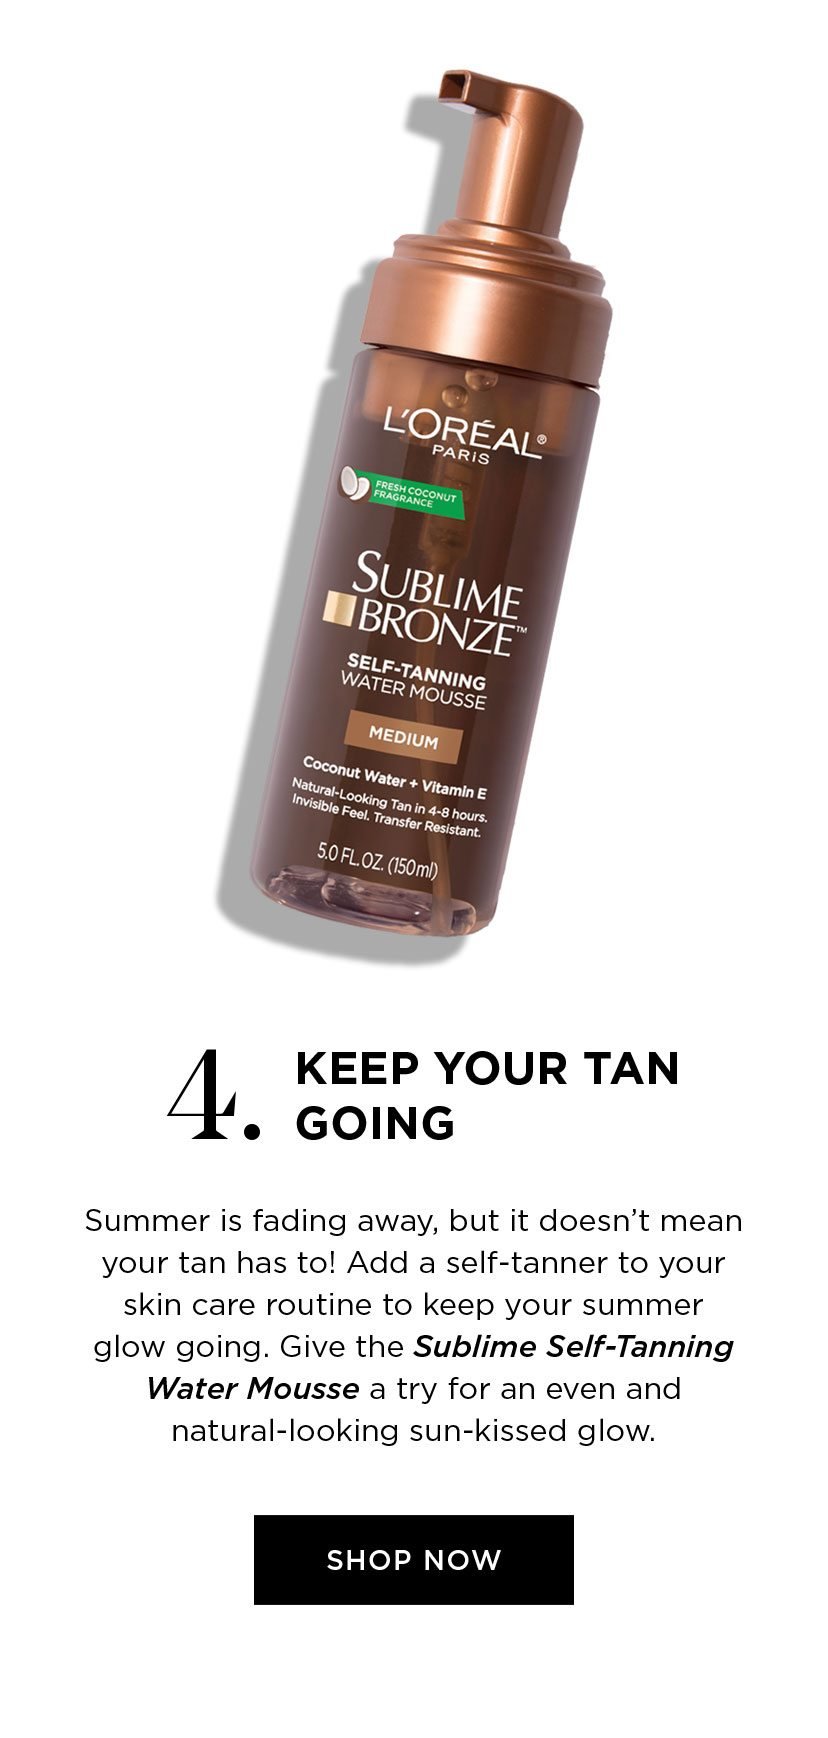 4. KEEP YOUR TAN GOING - Summer is fading away, but it doesn't mean your tan has to! Add a self-tanner to your skin care routine to keep your summer glow going. Give the Sublime Self-Tanning Water Mousse a try for an even and natural-looking sun-kissed glow. - SHOP NOW